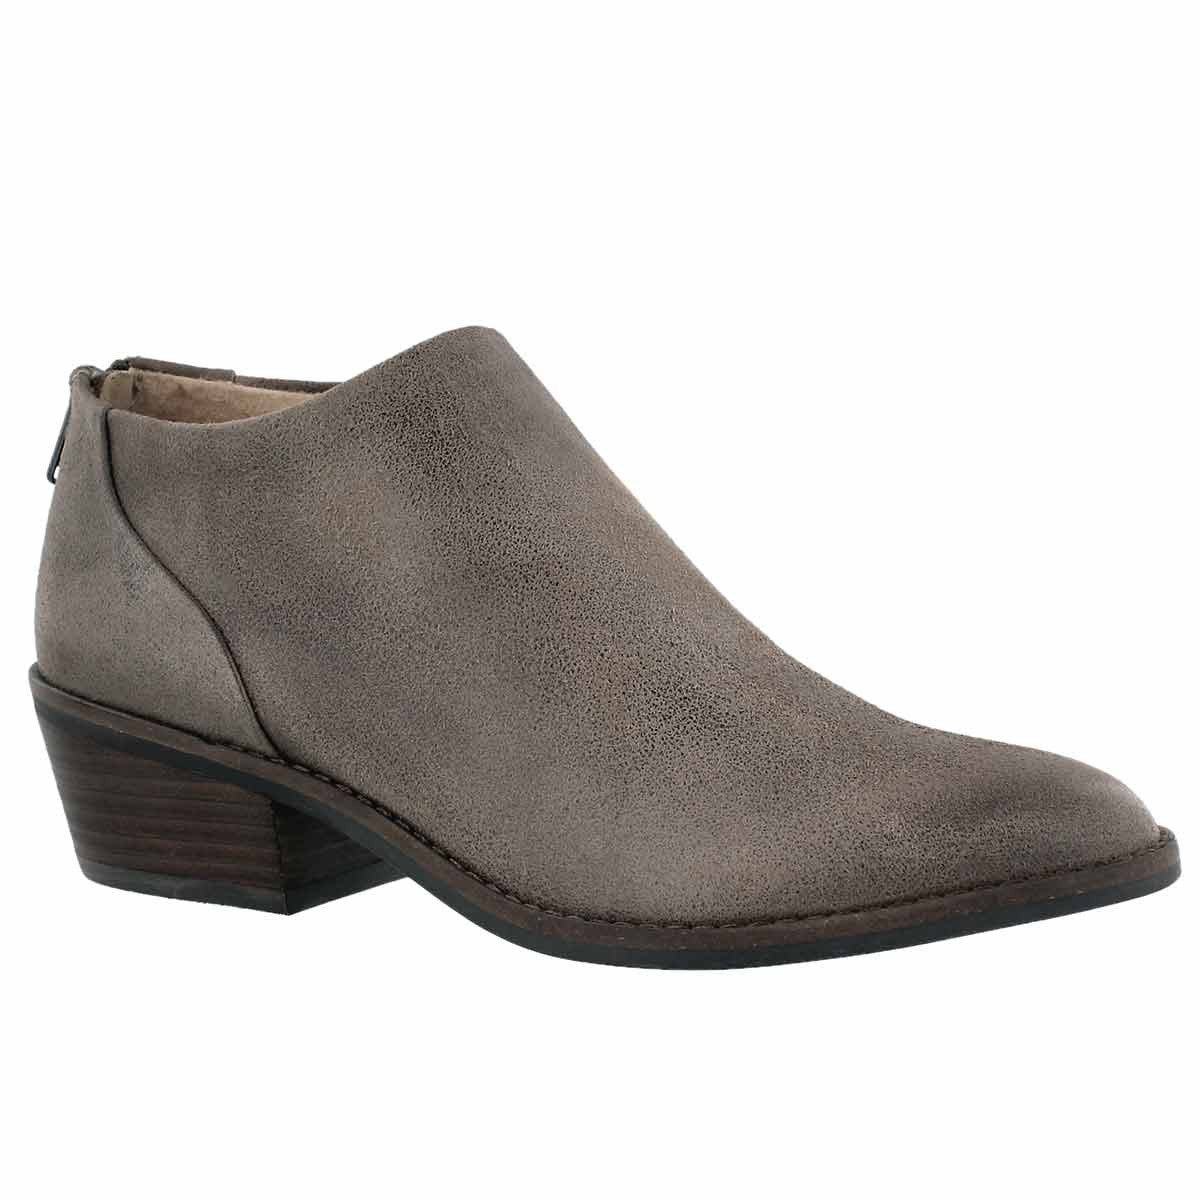 Lds Fai brindle zip up low casual bootie